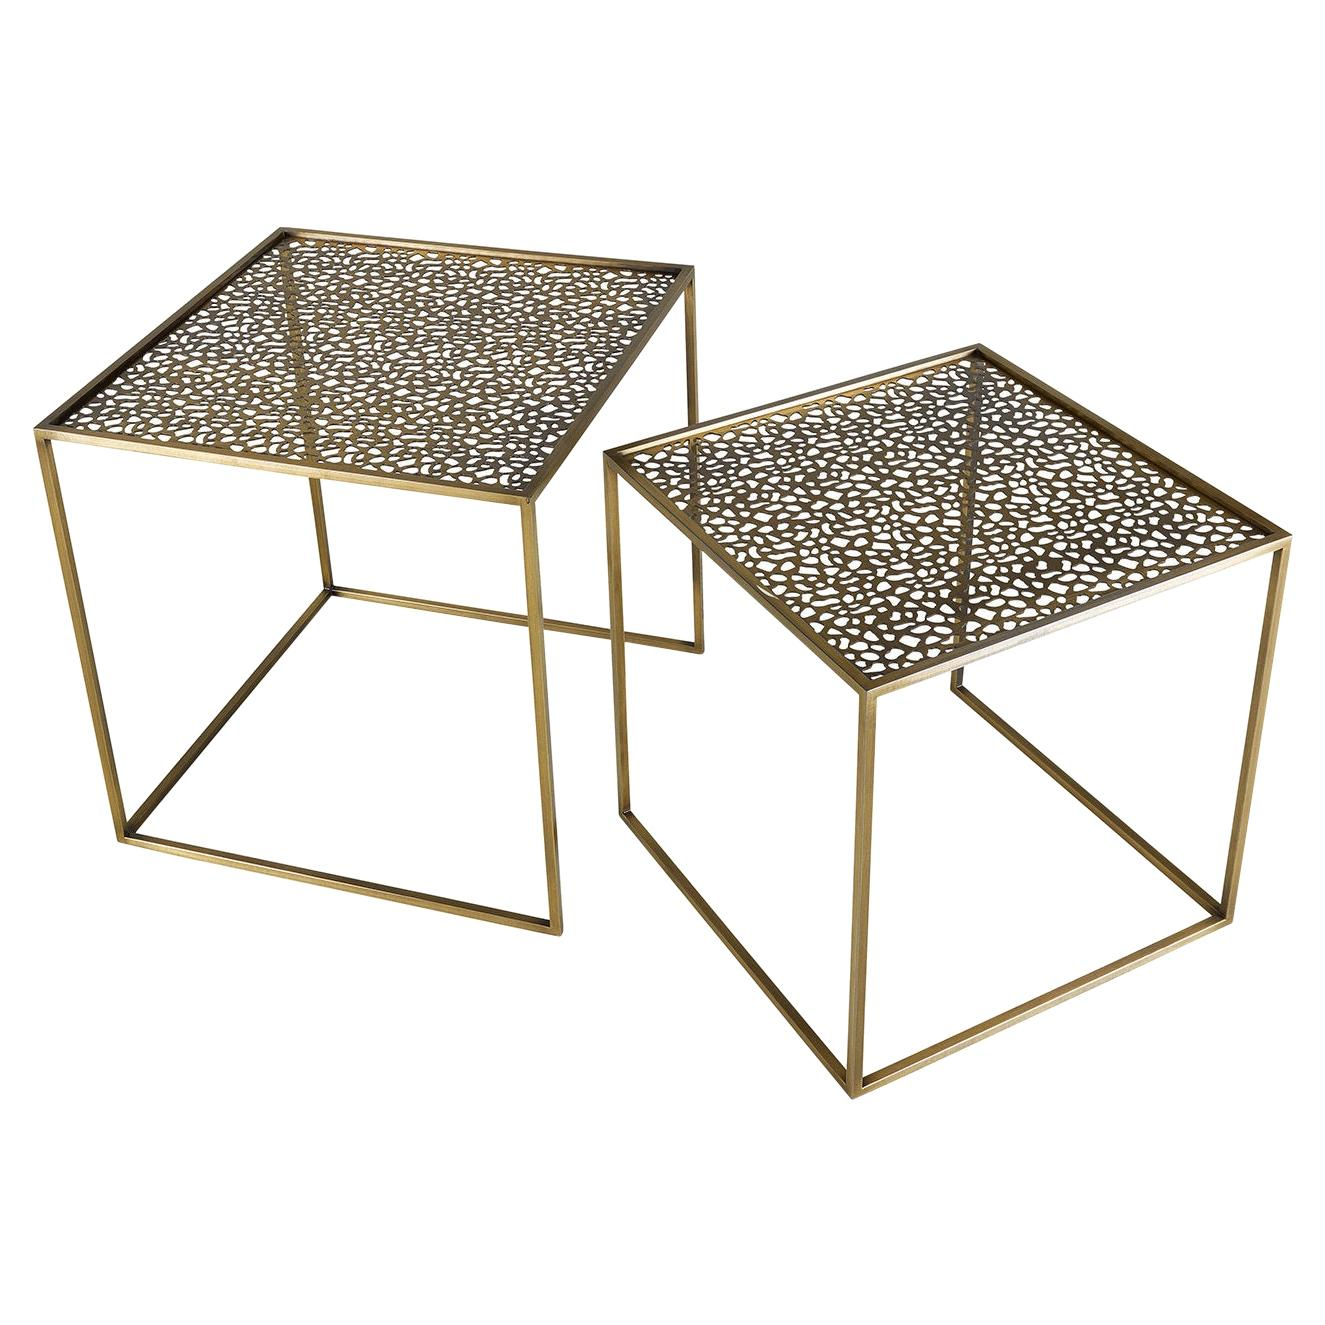 Friends Set of 2 Nesting Tables with Perforated Top